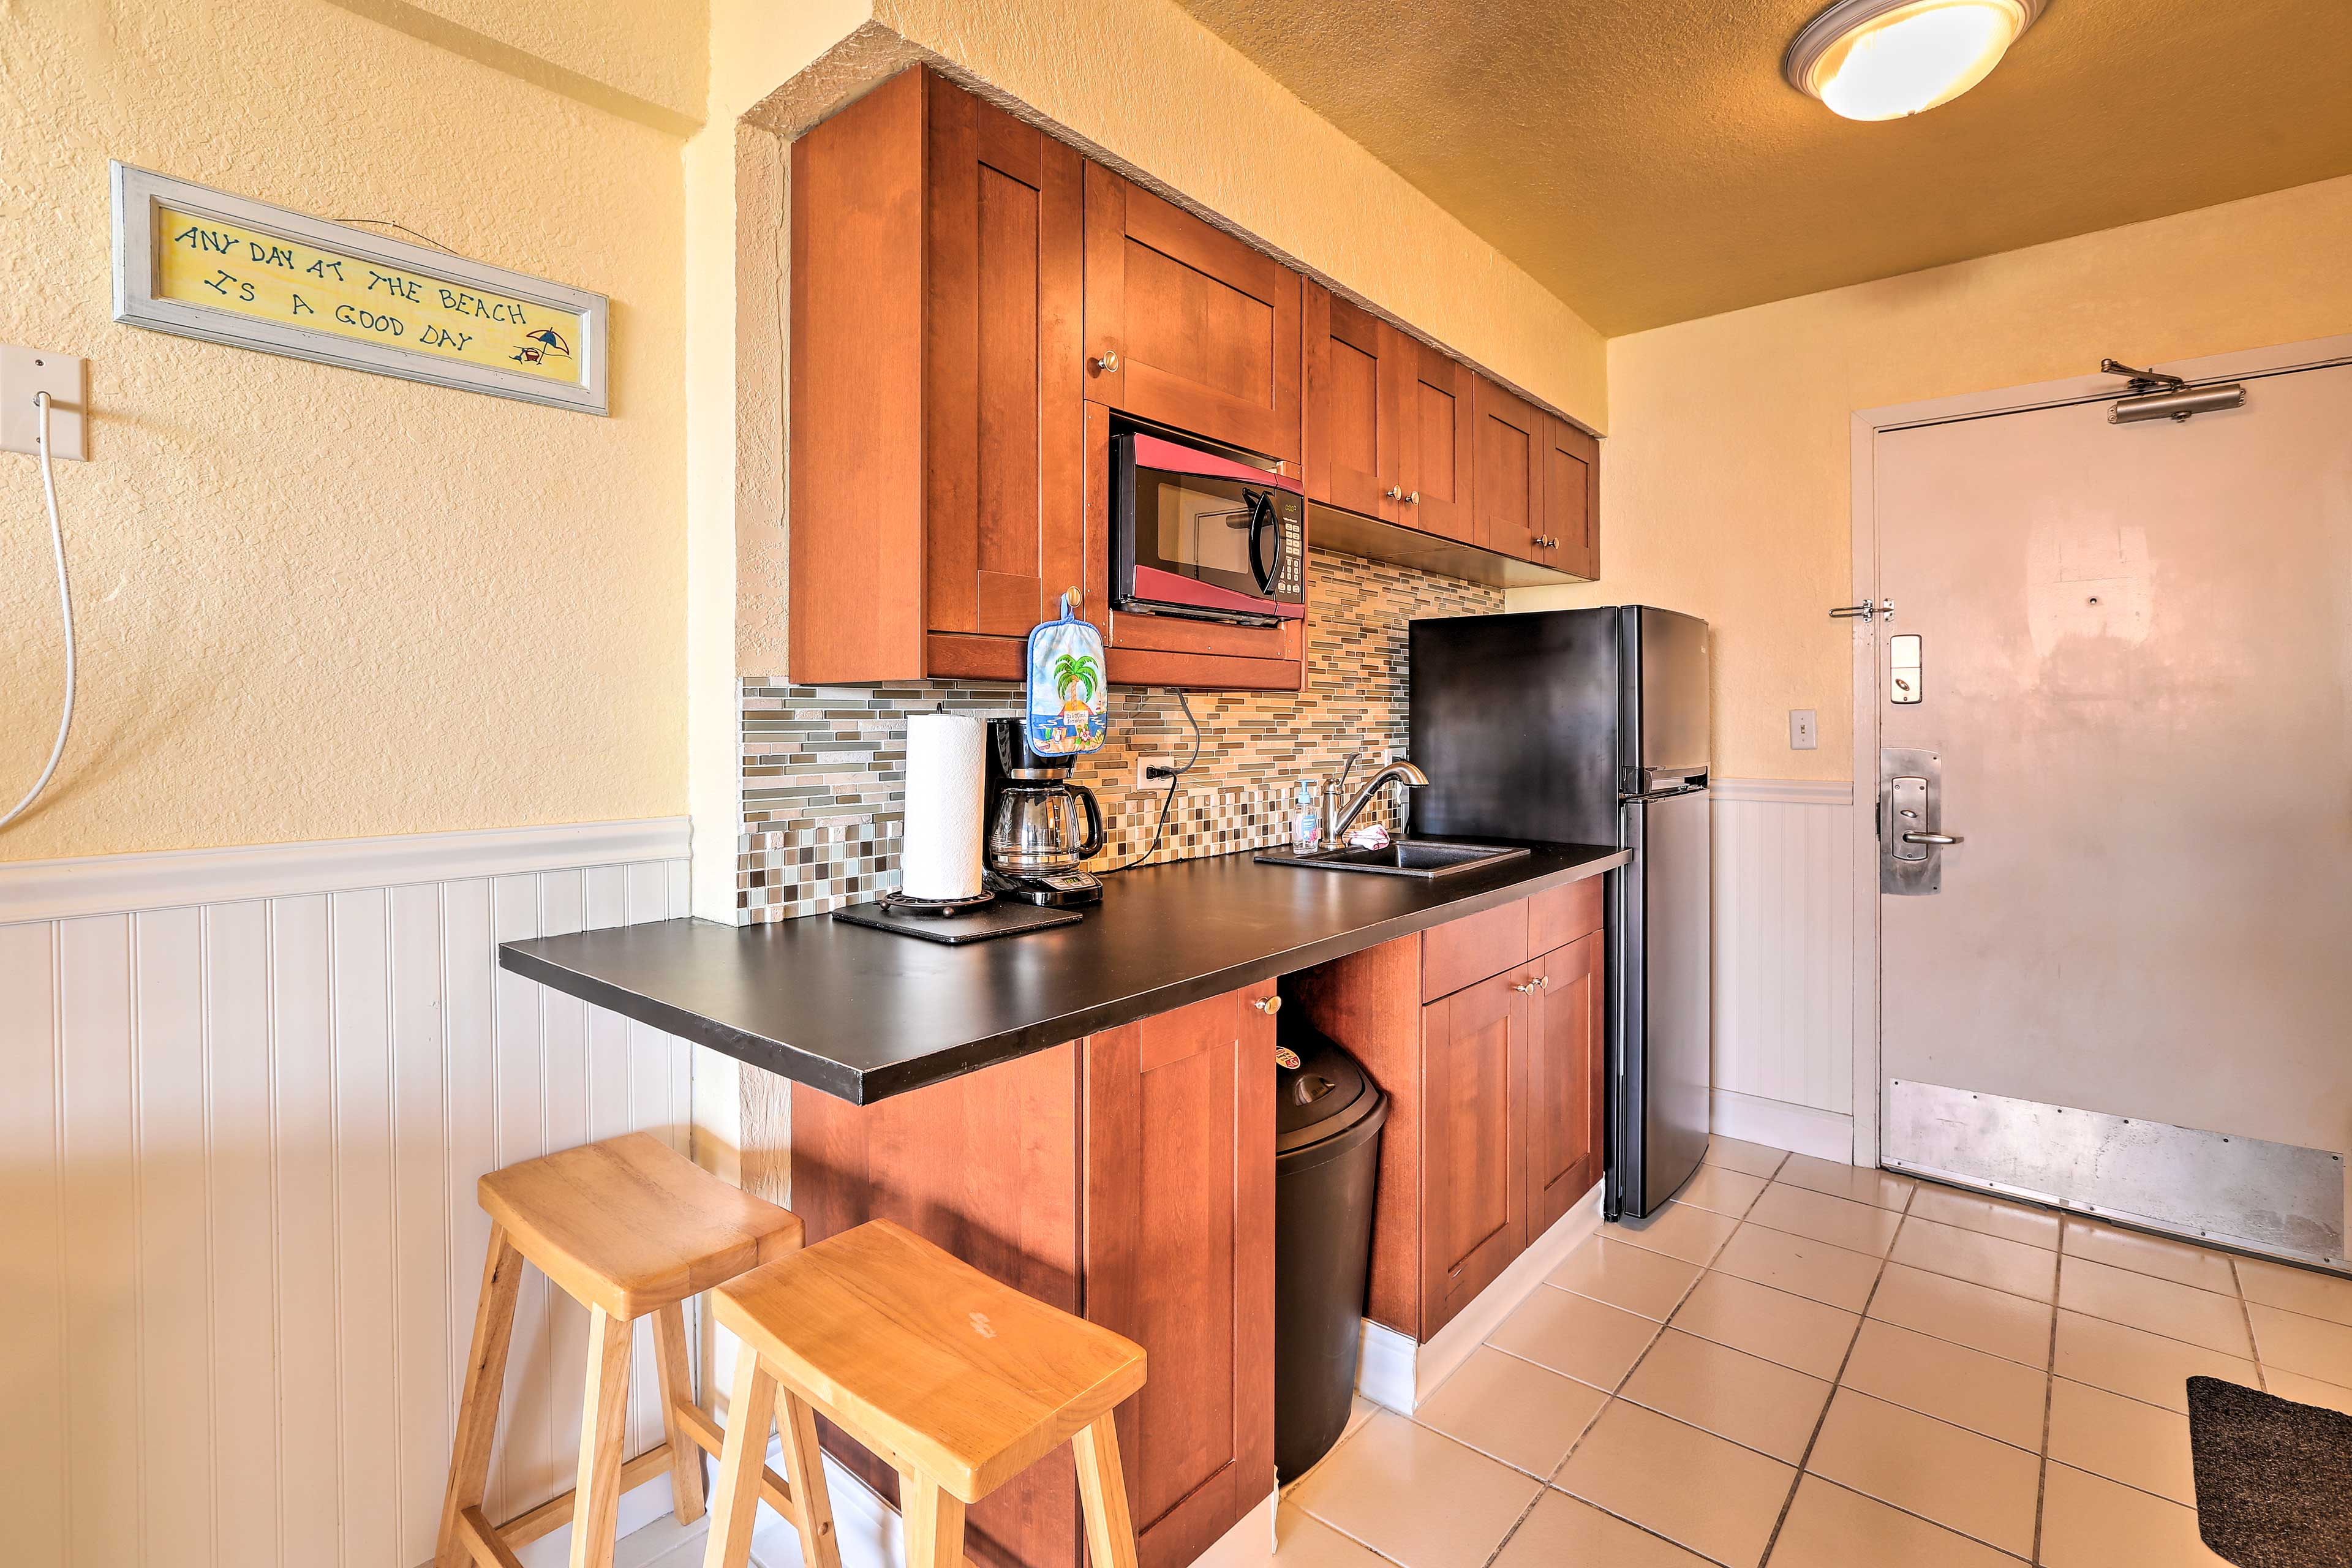 After a long day on the beach, whip up a snack in the well-equipped kitchenette.